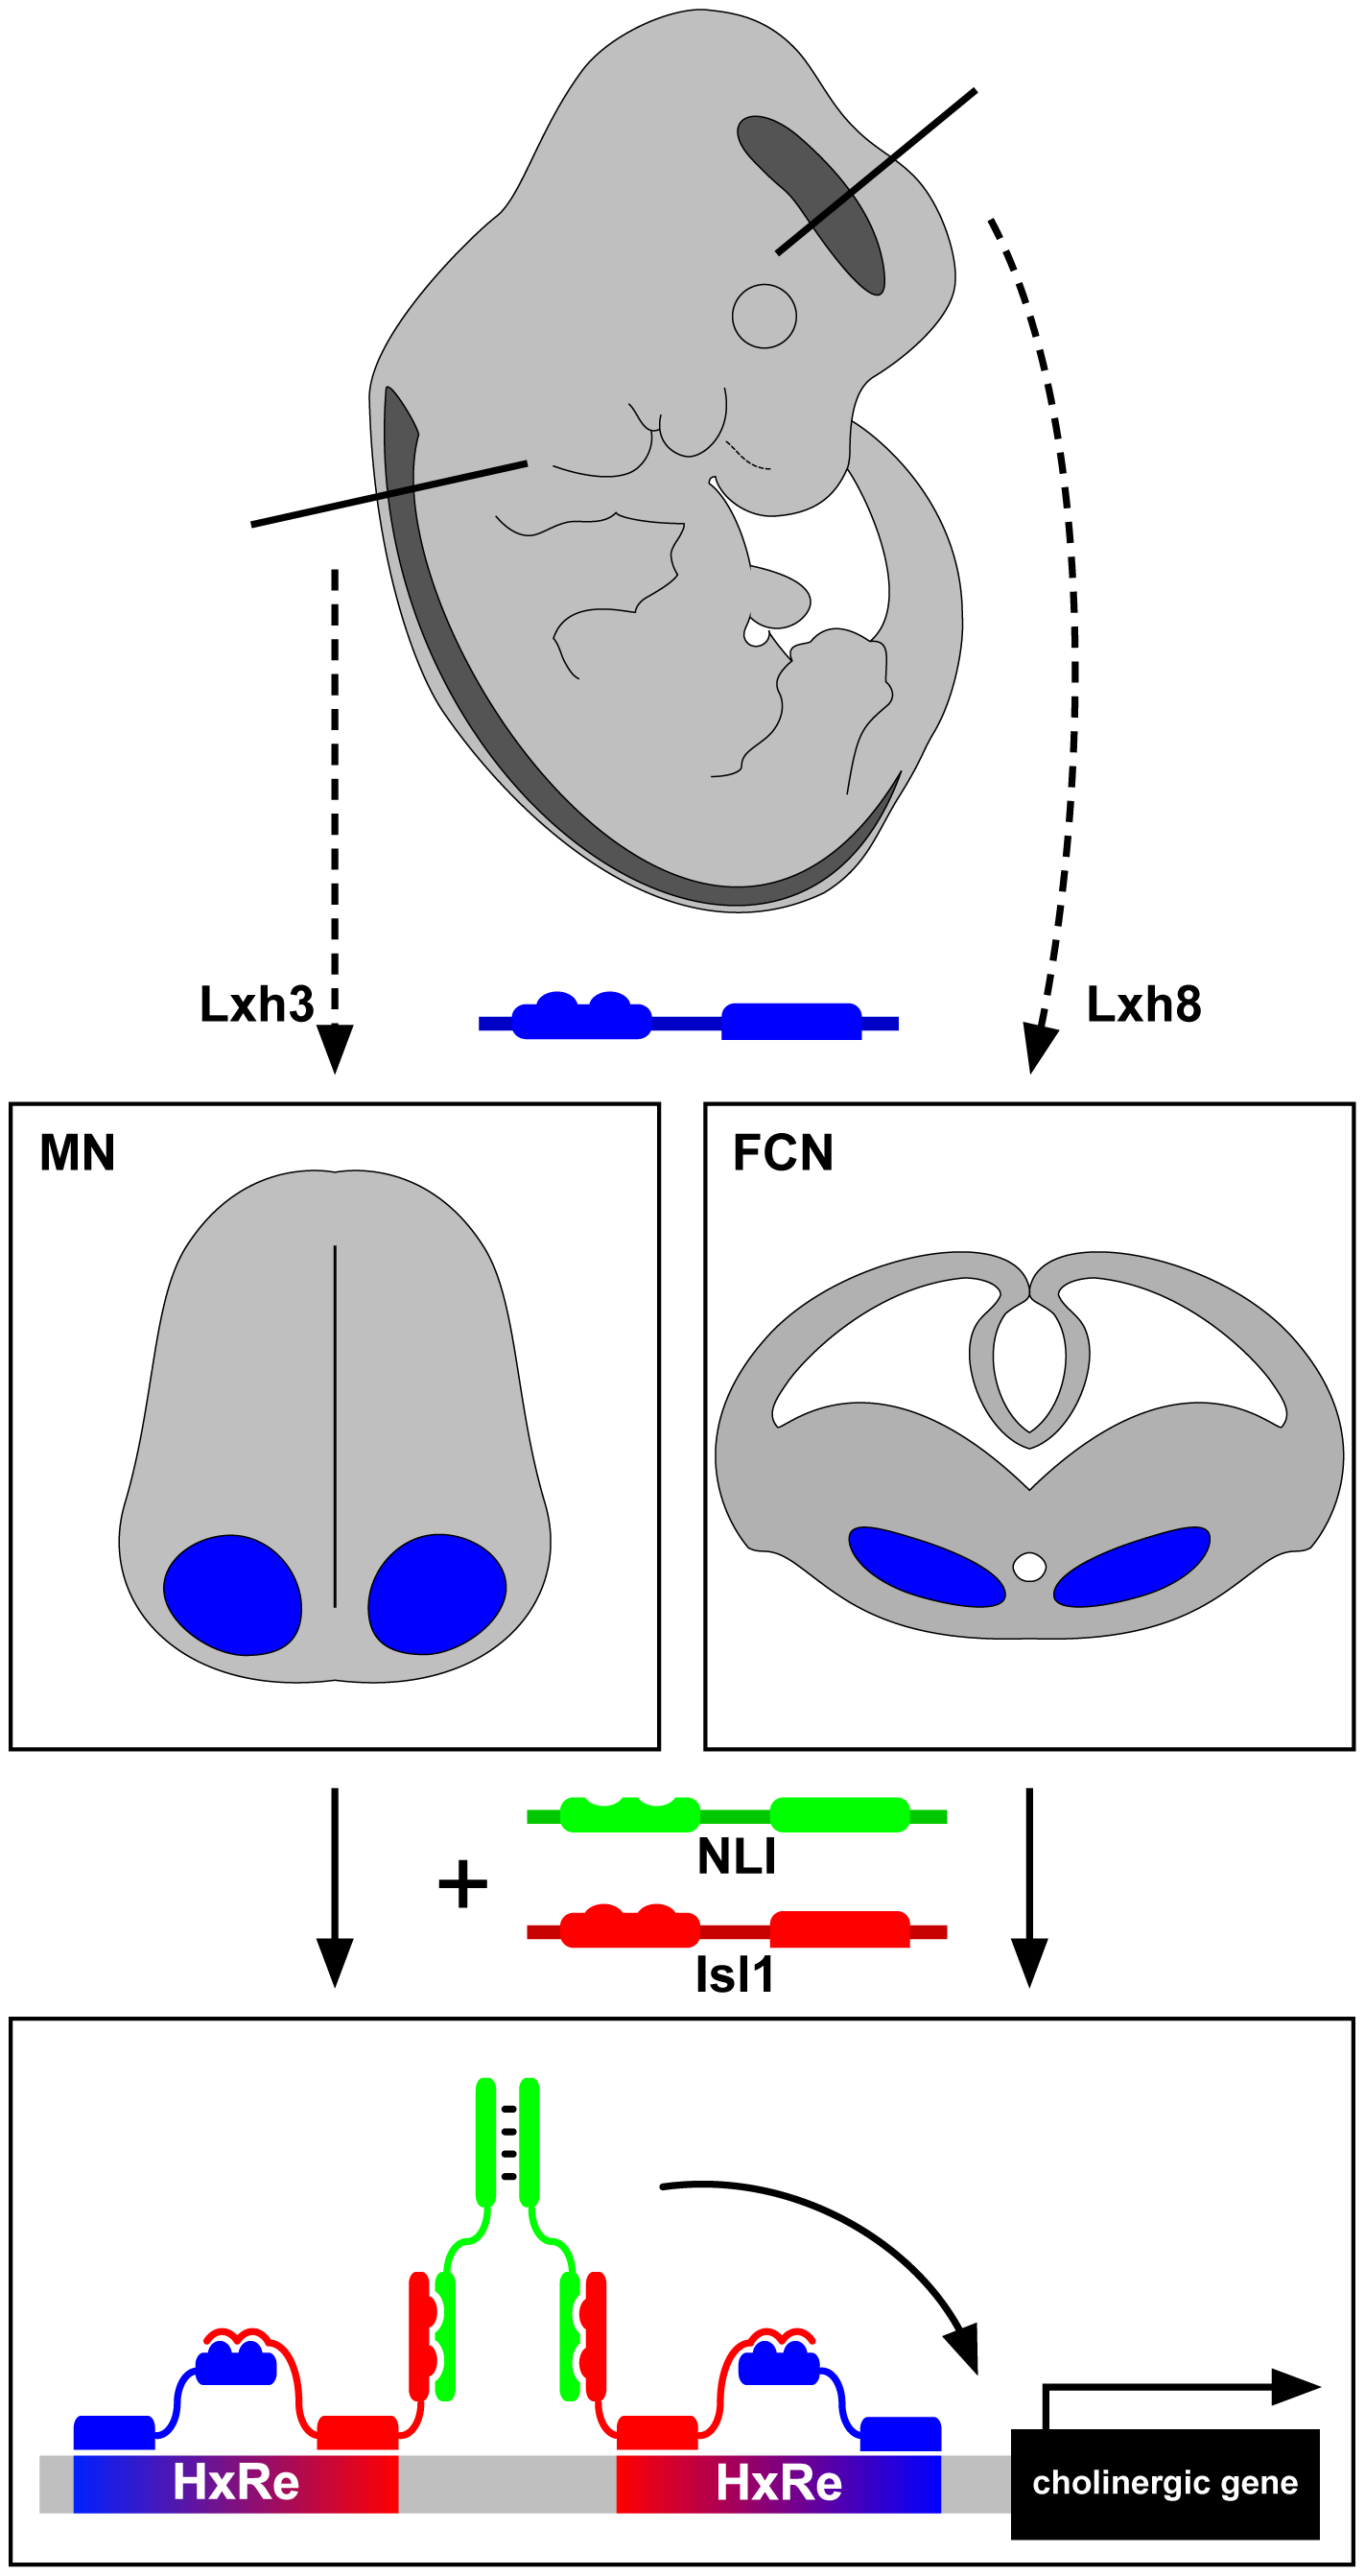 LIM-homeodomain proteins Lhx3 and Lhx8 induce the cholinergic neurotransmitter identity in spinal motor neurons and forebrain cholinergic neurons through Isl1 and NLI hexamer complex transcriptional activity.